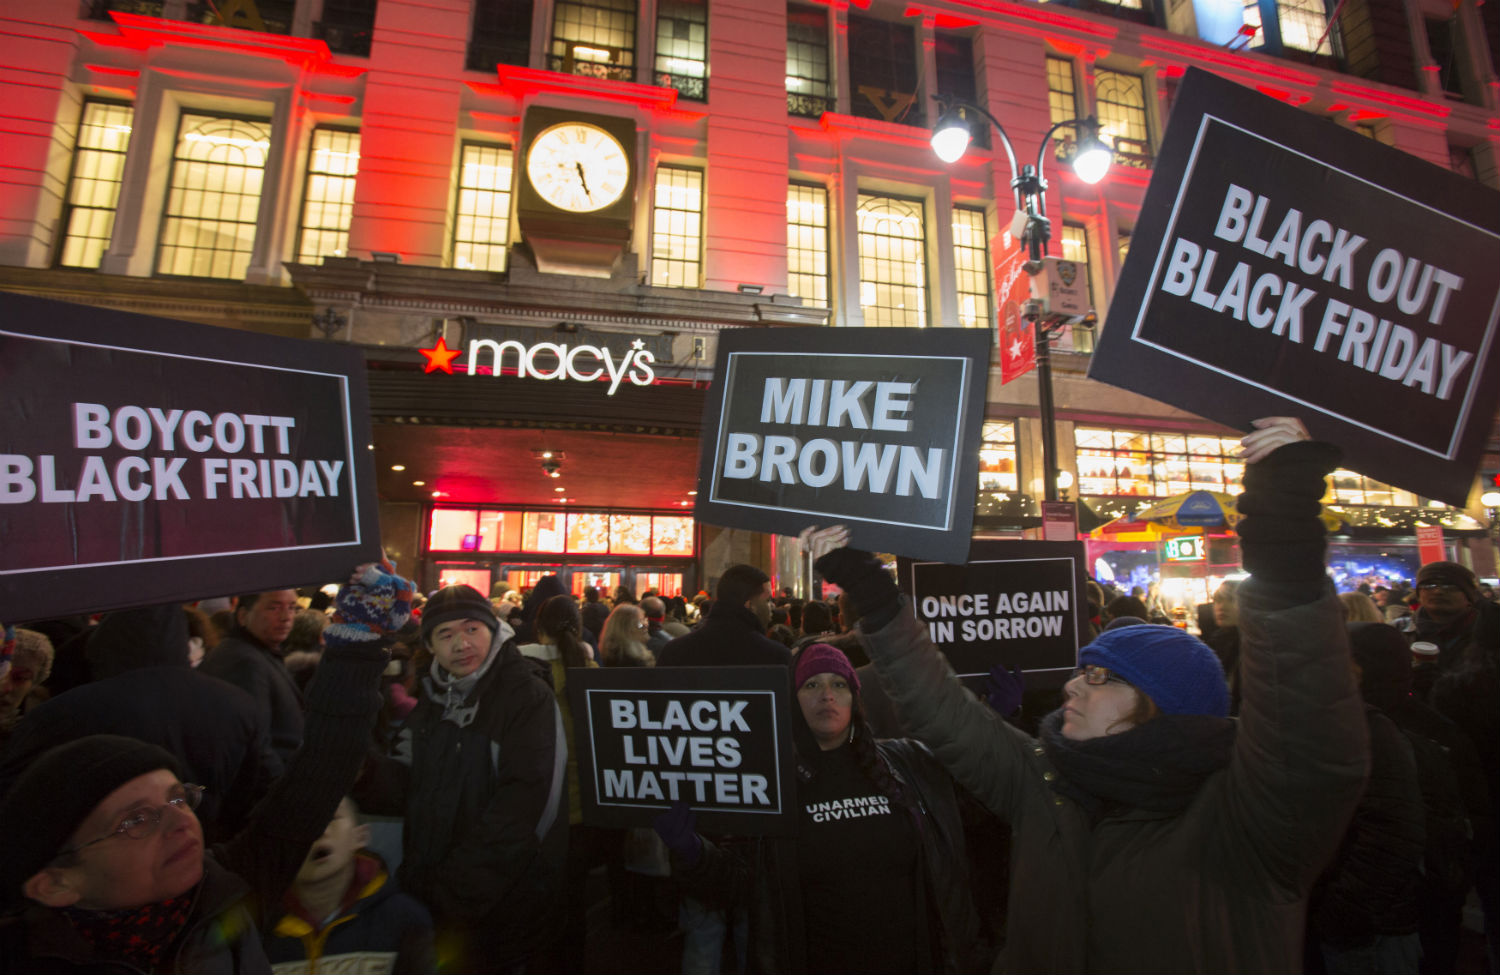 Black Friday ? Black Friday Rage, From Ferguson To Walmart | The Nation